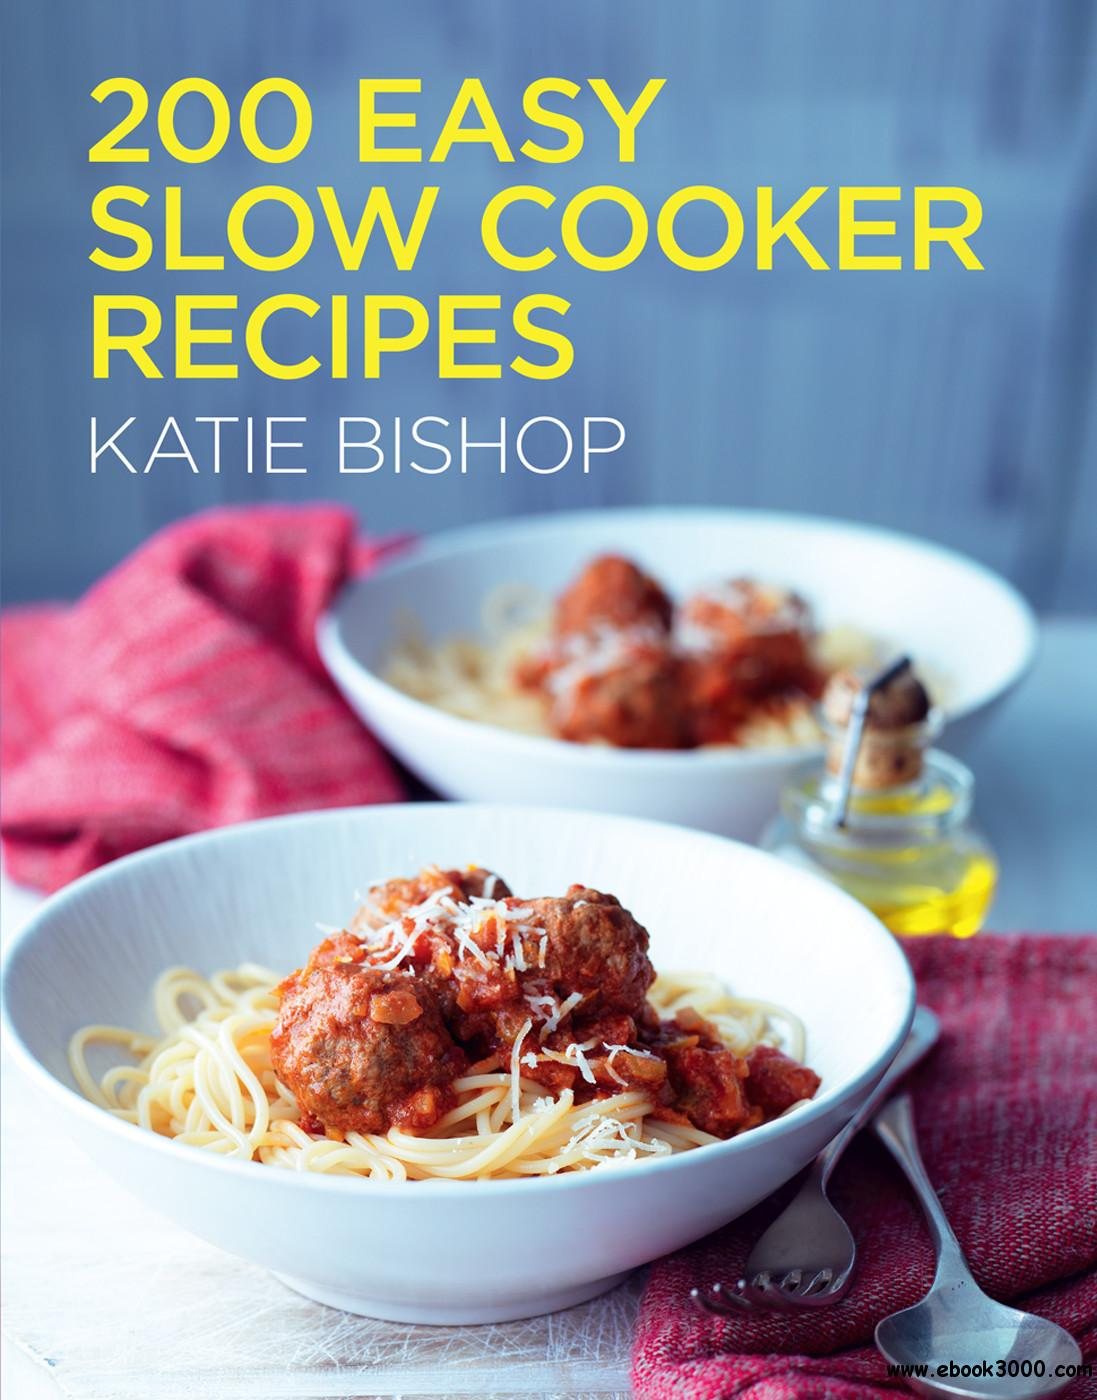 200 Easy Slow Cooker Recipes free download